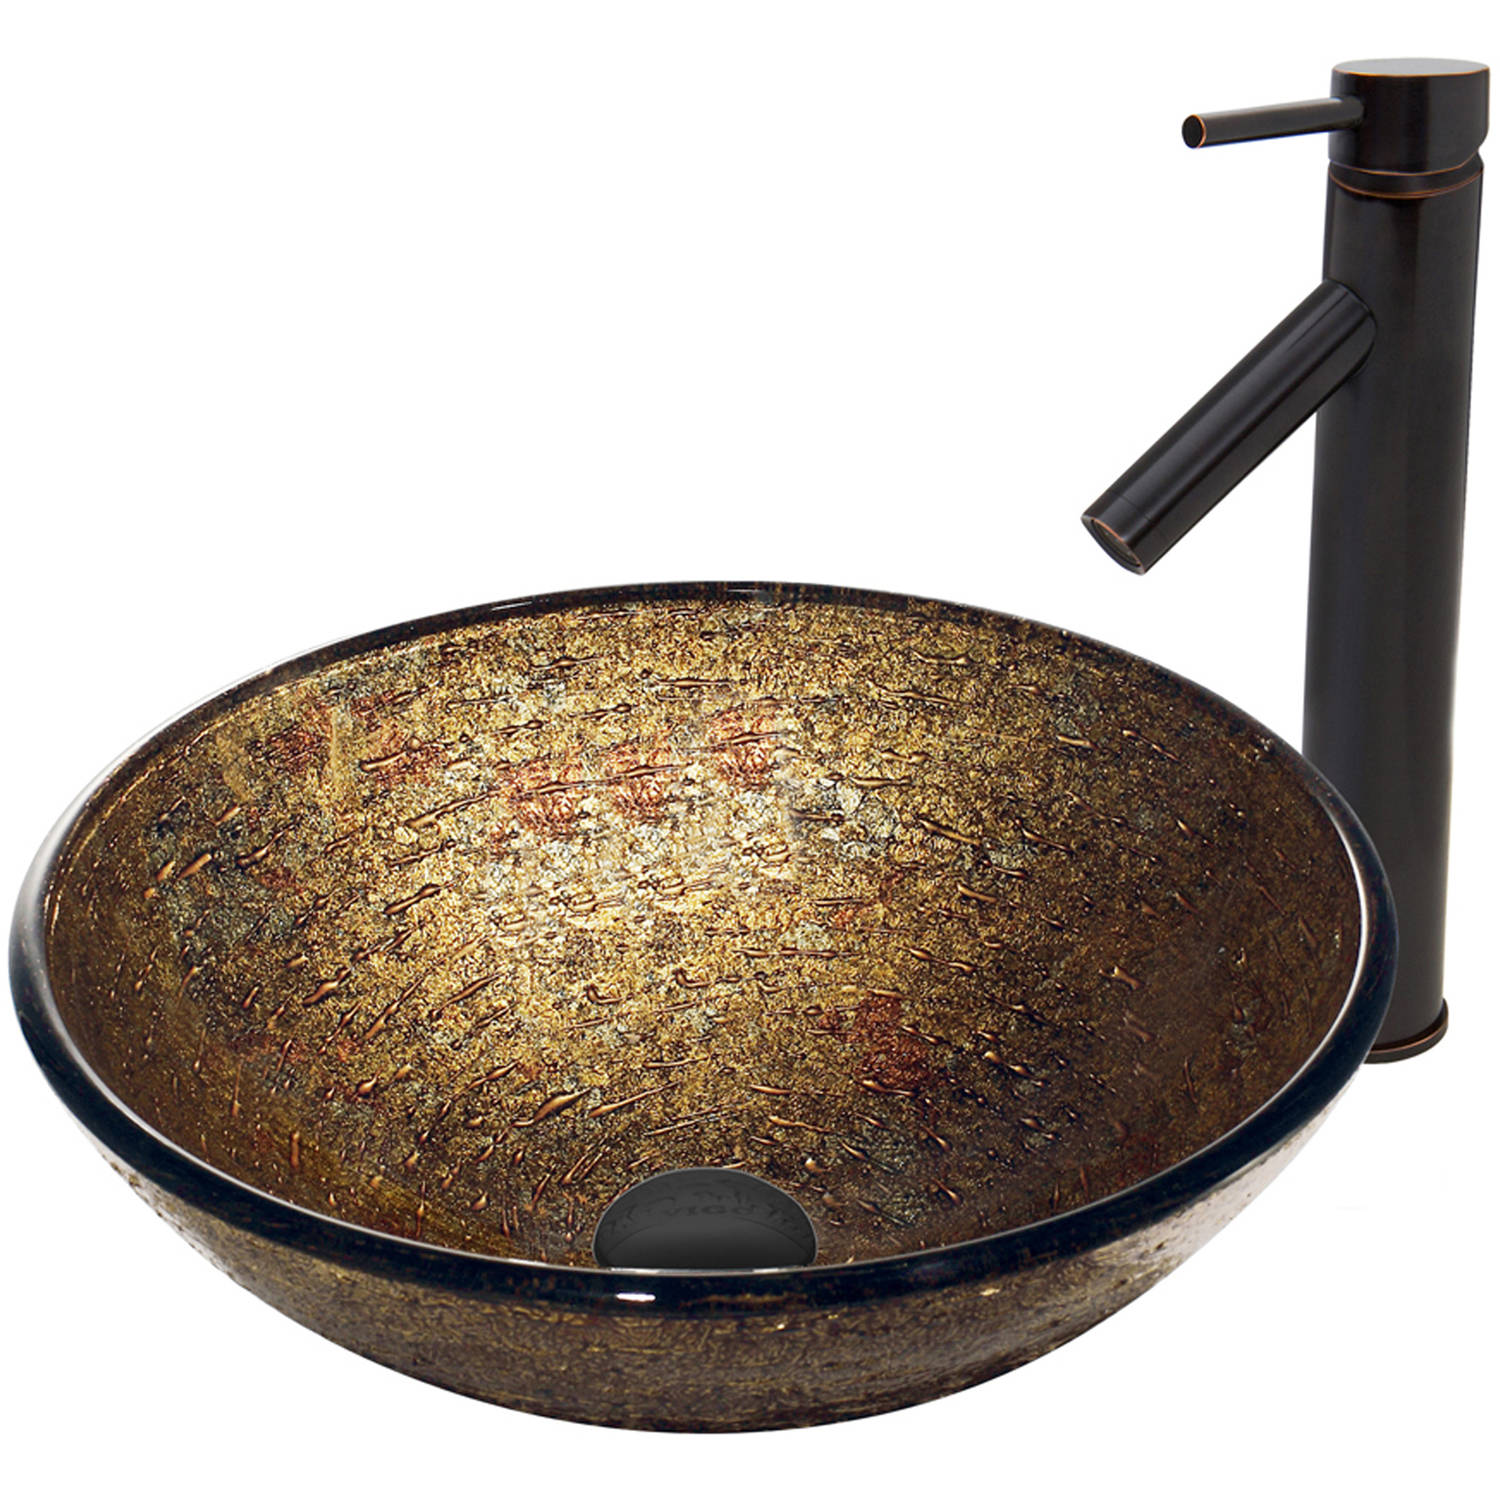 VIGO Textured Copper Glass Vessel Sink and Dior Faucet Set, Antique Rubbed Bronze Finish